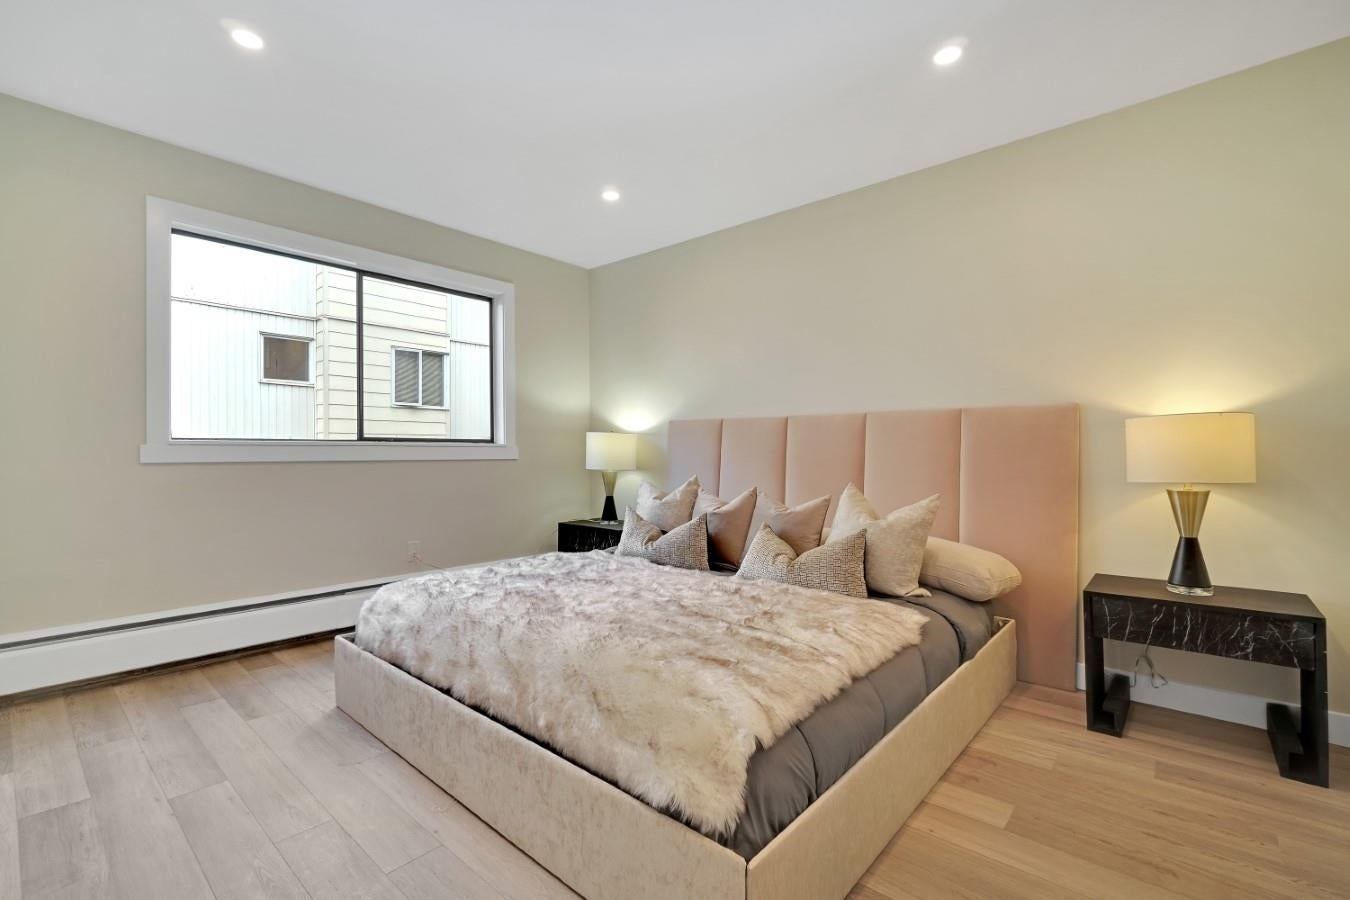 206 330 W 2ND STREET - Lower Lonsdale Apartment/Condo for sale, 2 Bedrooms (R2604160) - #15